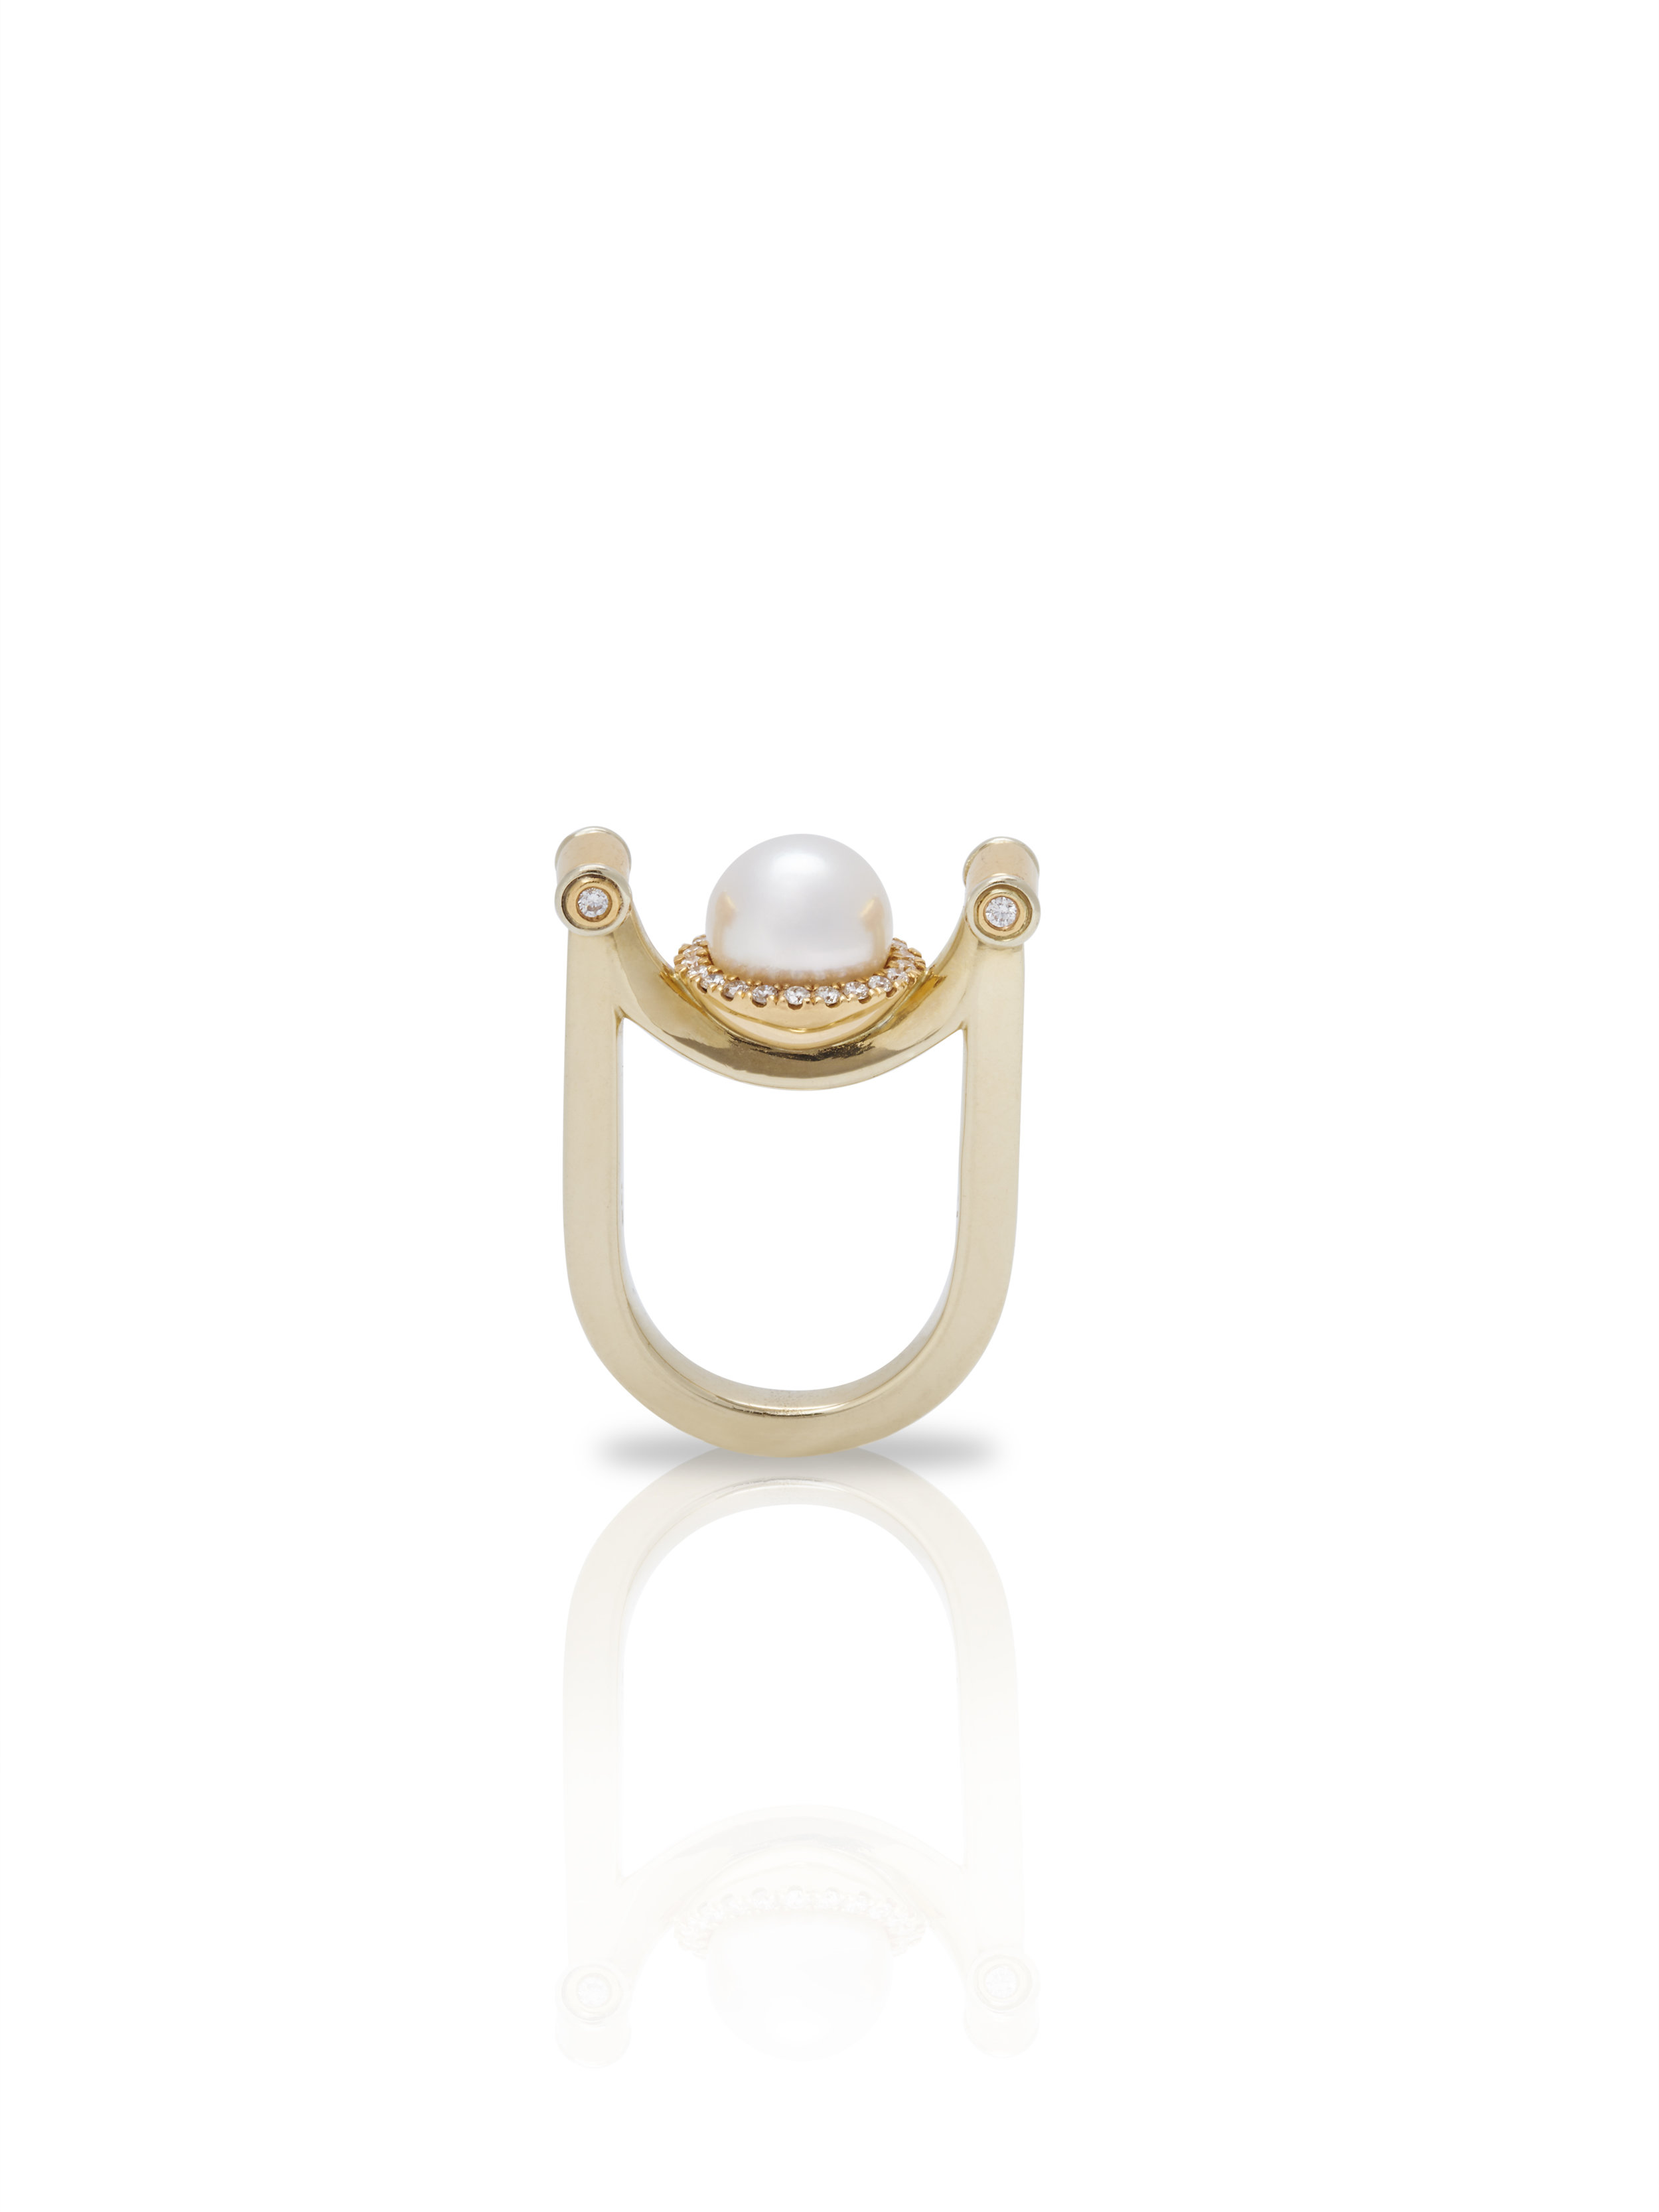 ROSIE RING    18K GOLD SOUTH SEA PEARL 0.3 CT OF DIAMONDS      Contact for inquiry